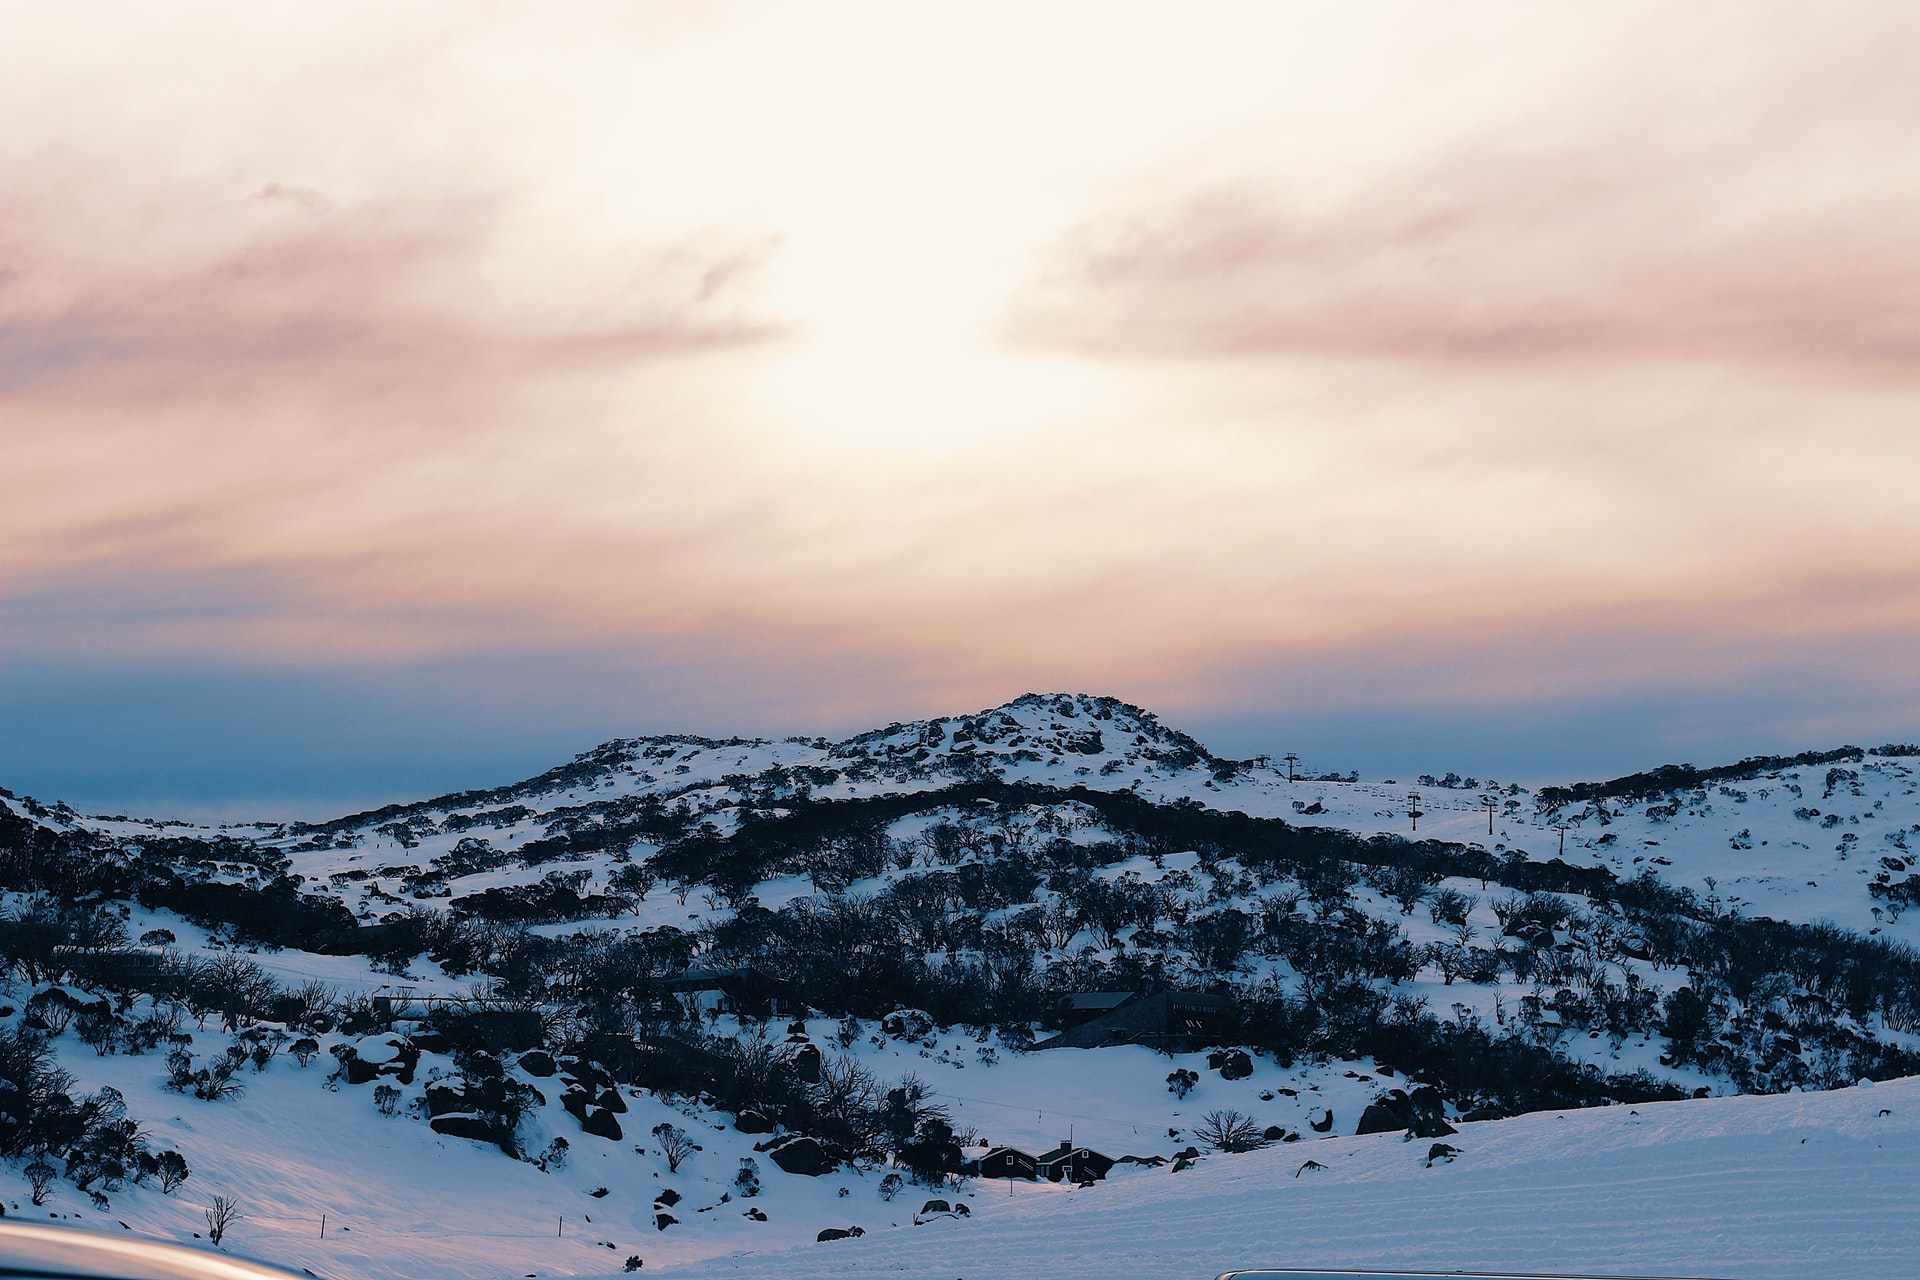 mount buller snowy mountain at sunset